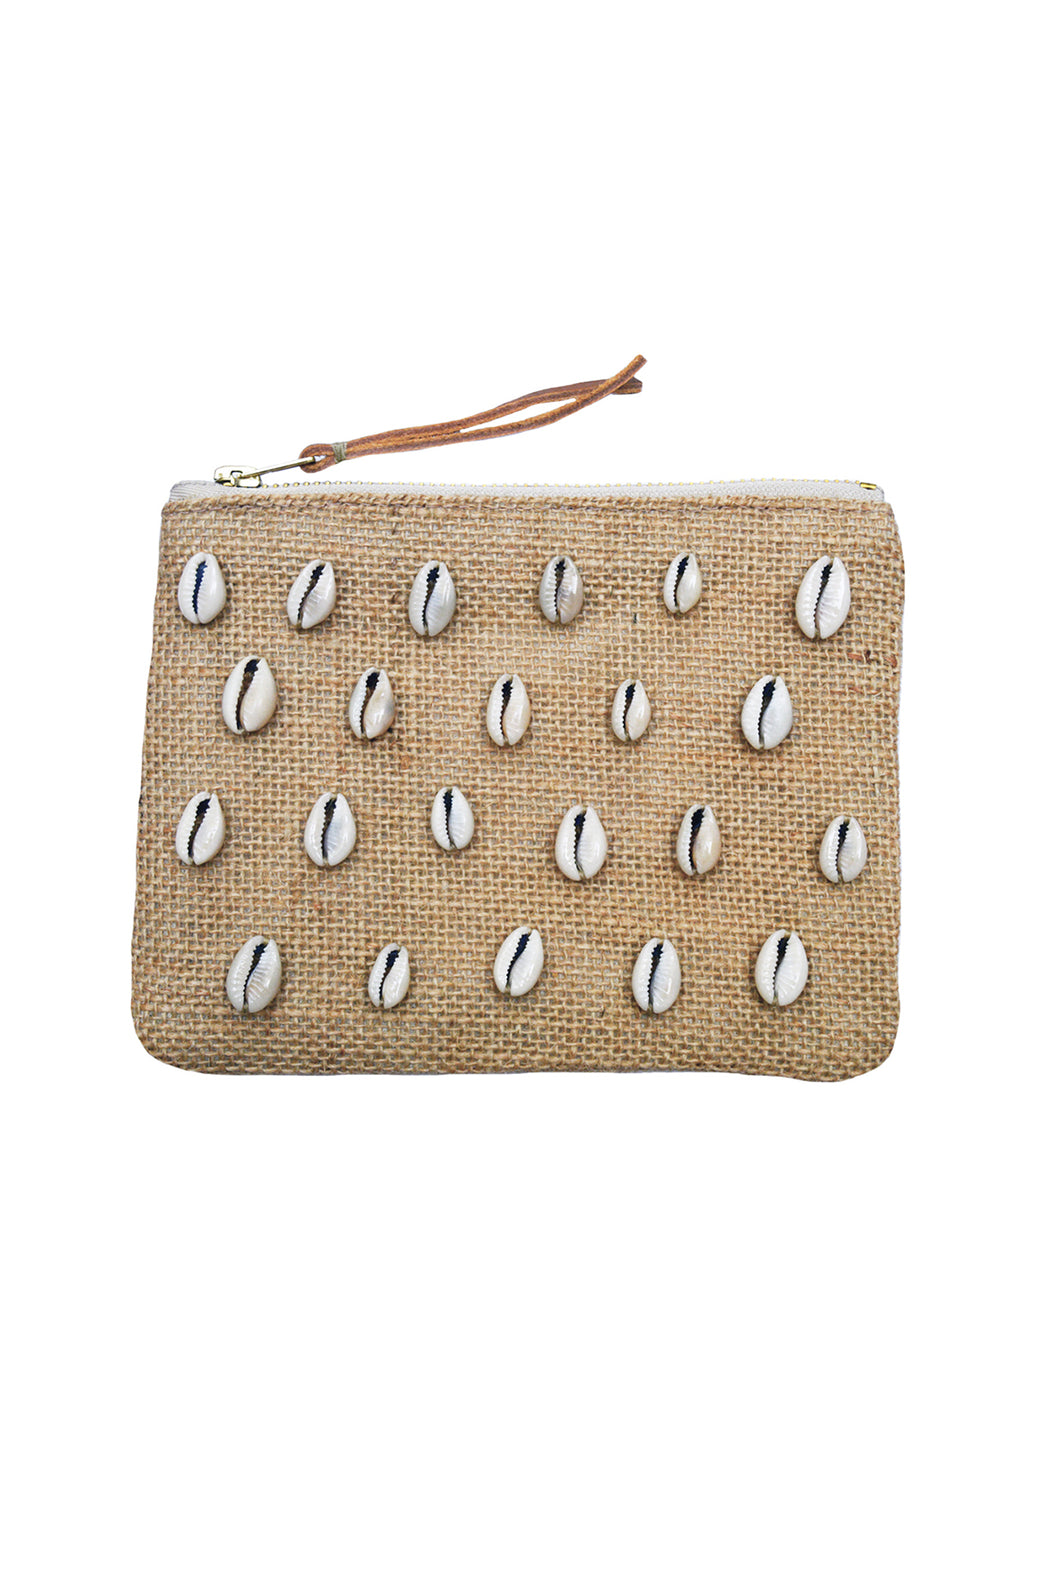 TRAVELLER JUTE COIN PURSE - COWRIE